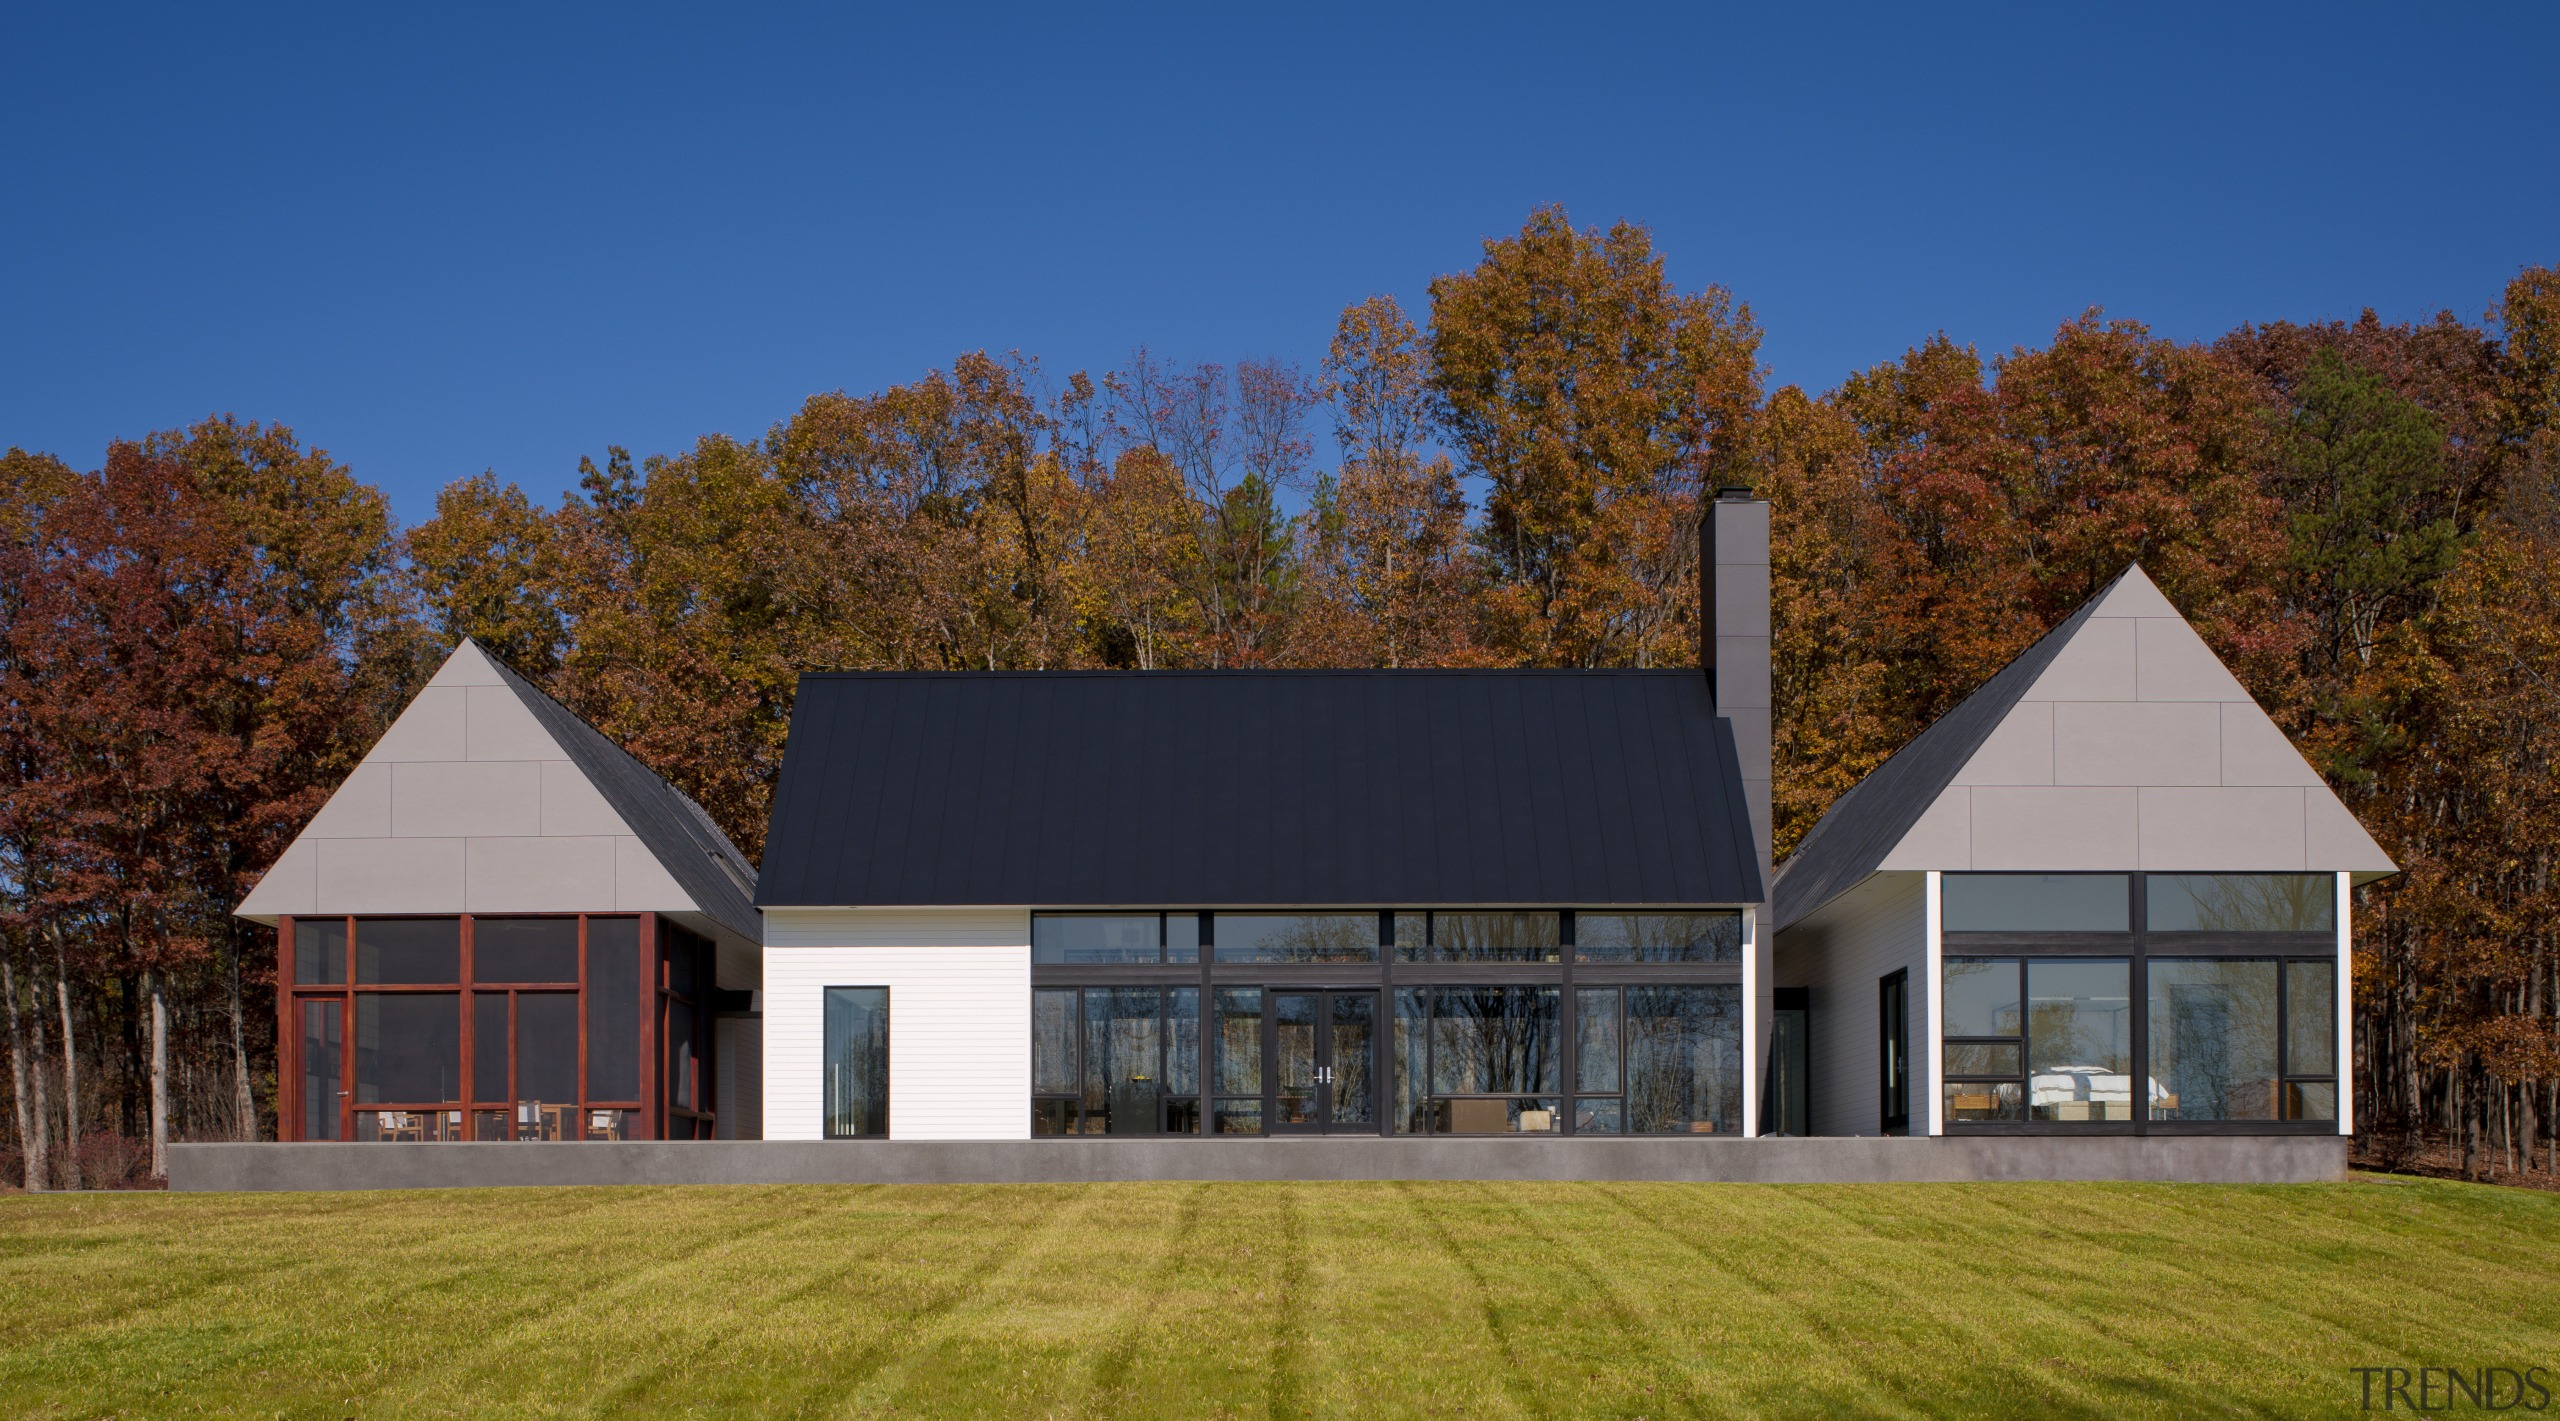 Modern country family home - Modern country family architecture, barn, cottage, estate, facade, farmhouse, home, house, property, real estate, roof, sky, blue, brown